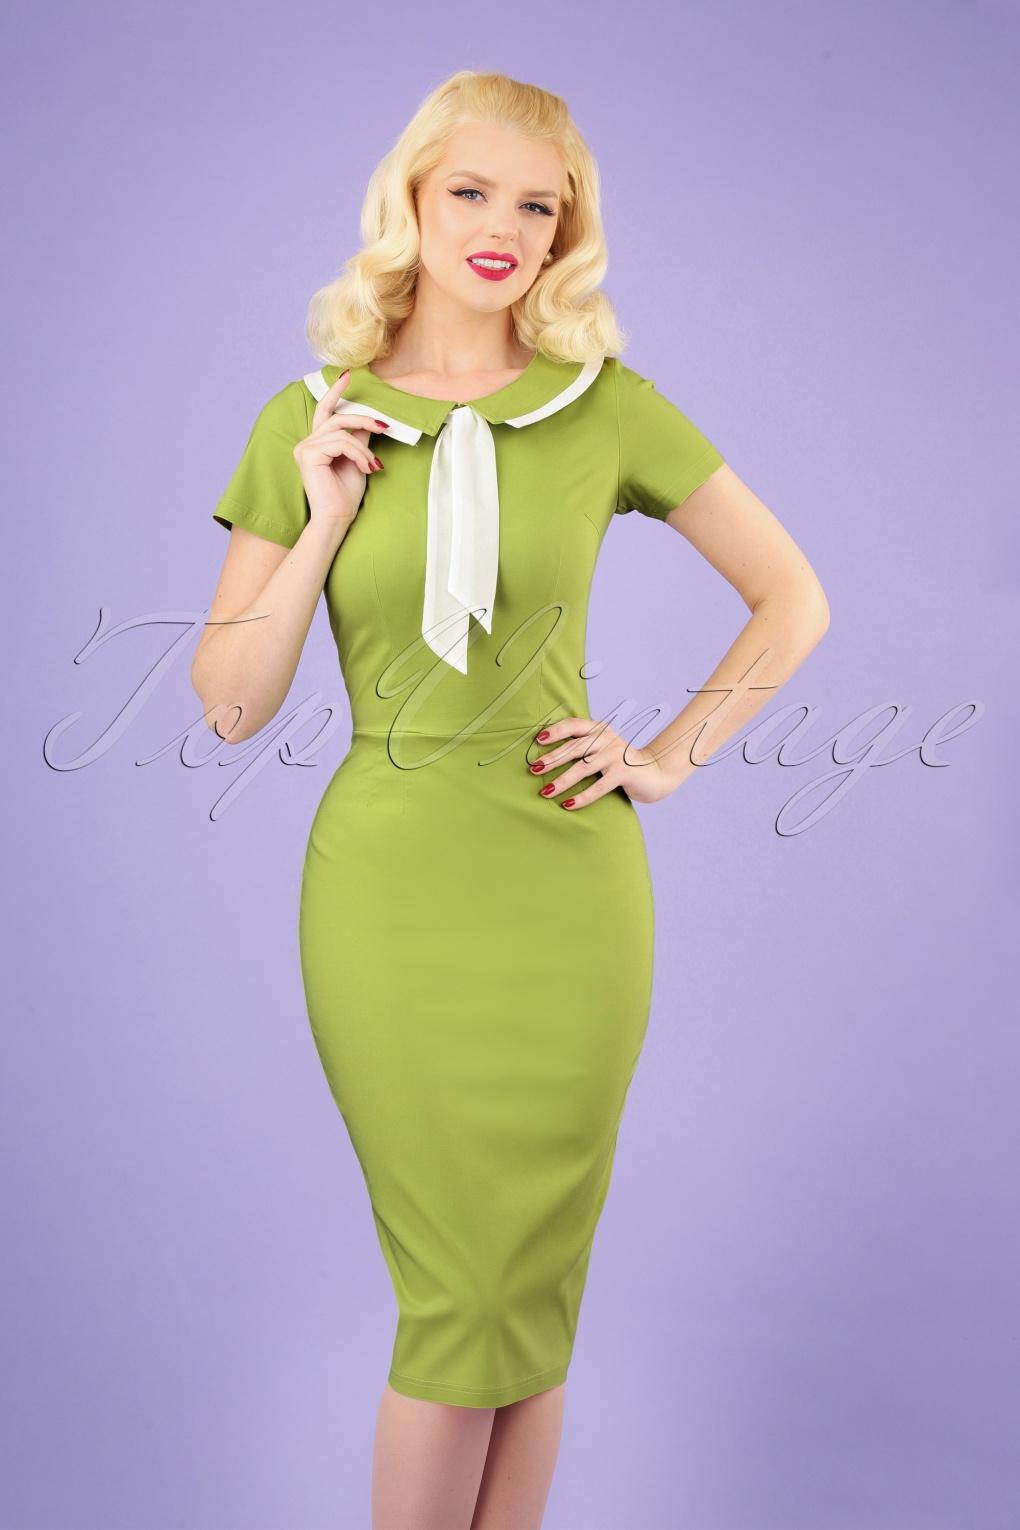 1960s Style Dresses, Clothing, Shoes UK 50s Catherine Pencil Dress in Lime �94.16 AT vintagedancer.com